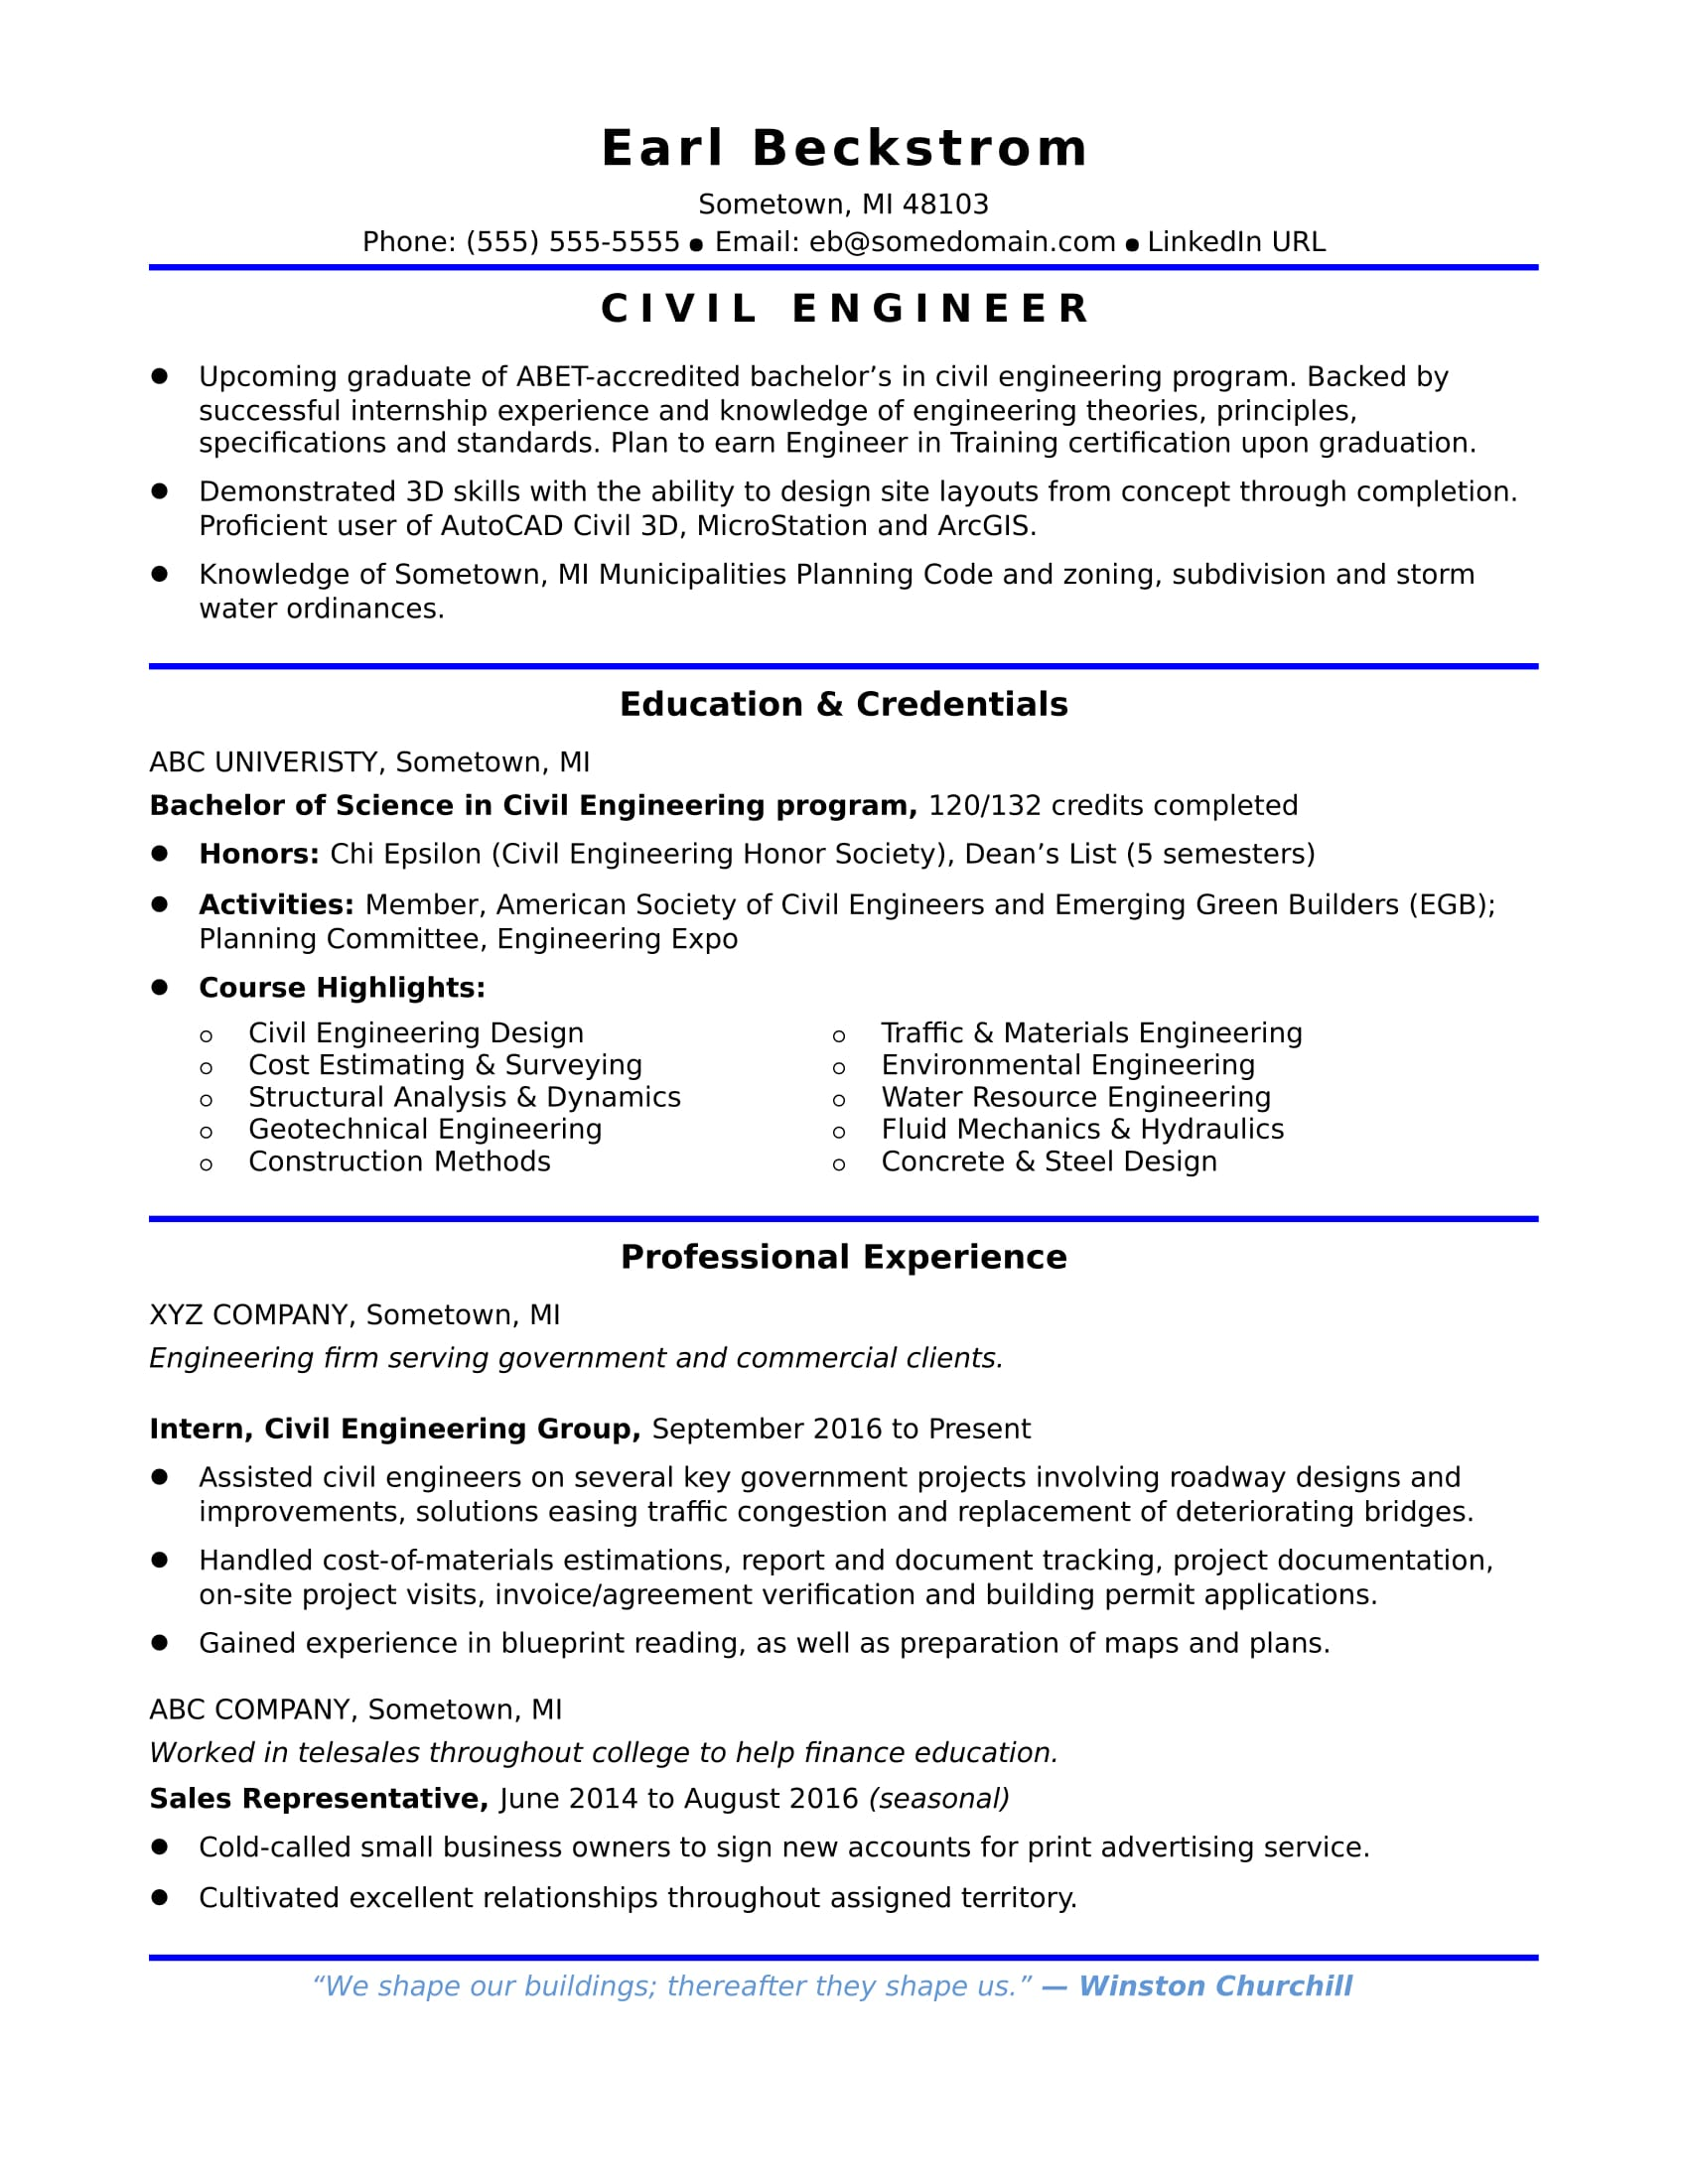 resume Engineer Resume Template sample resume for an entry level civil engineer monster com engineer